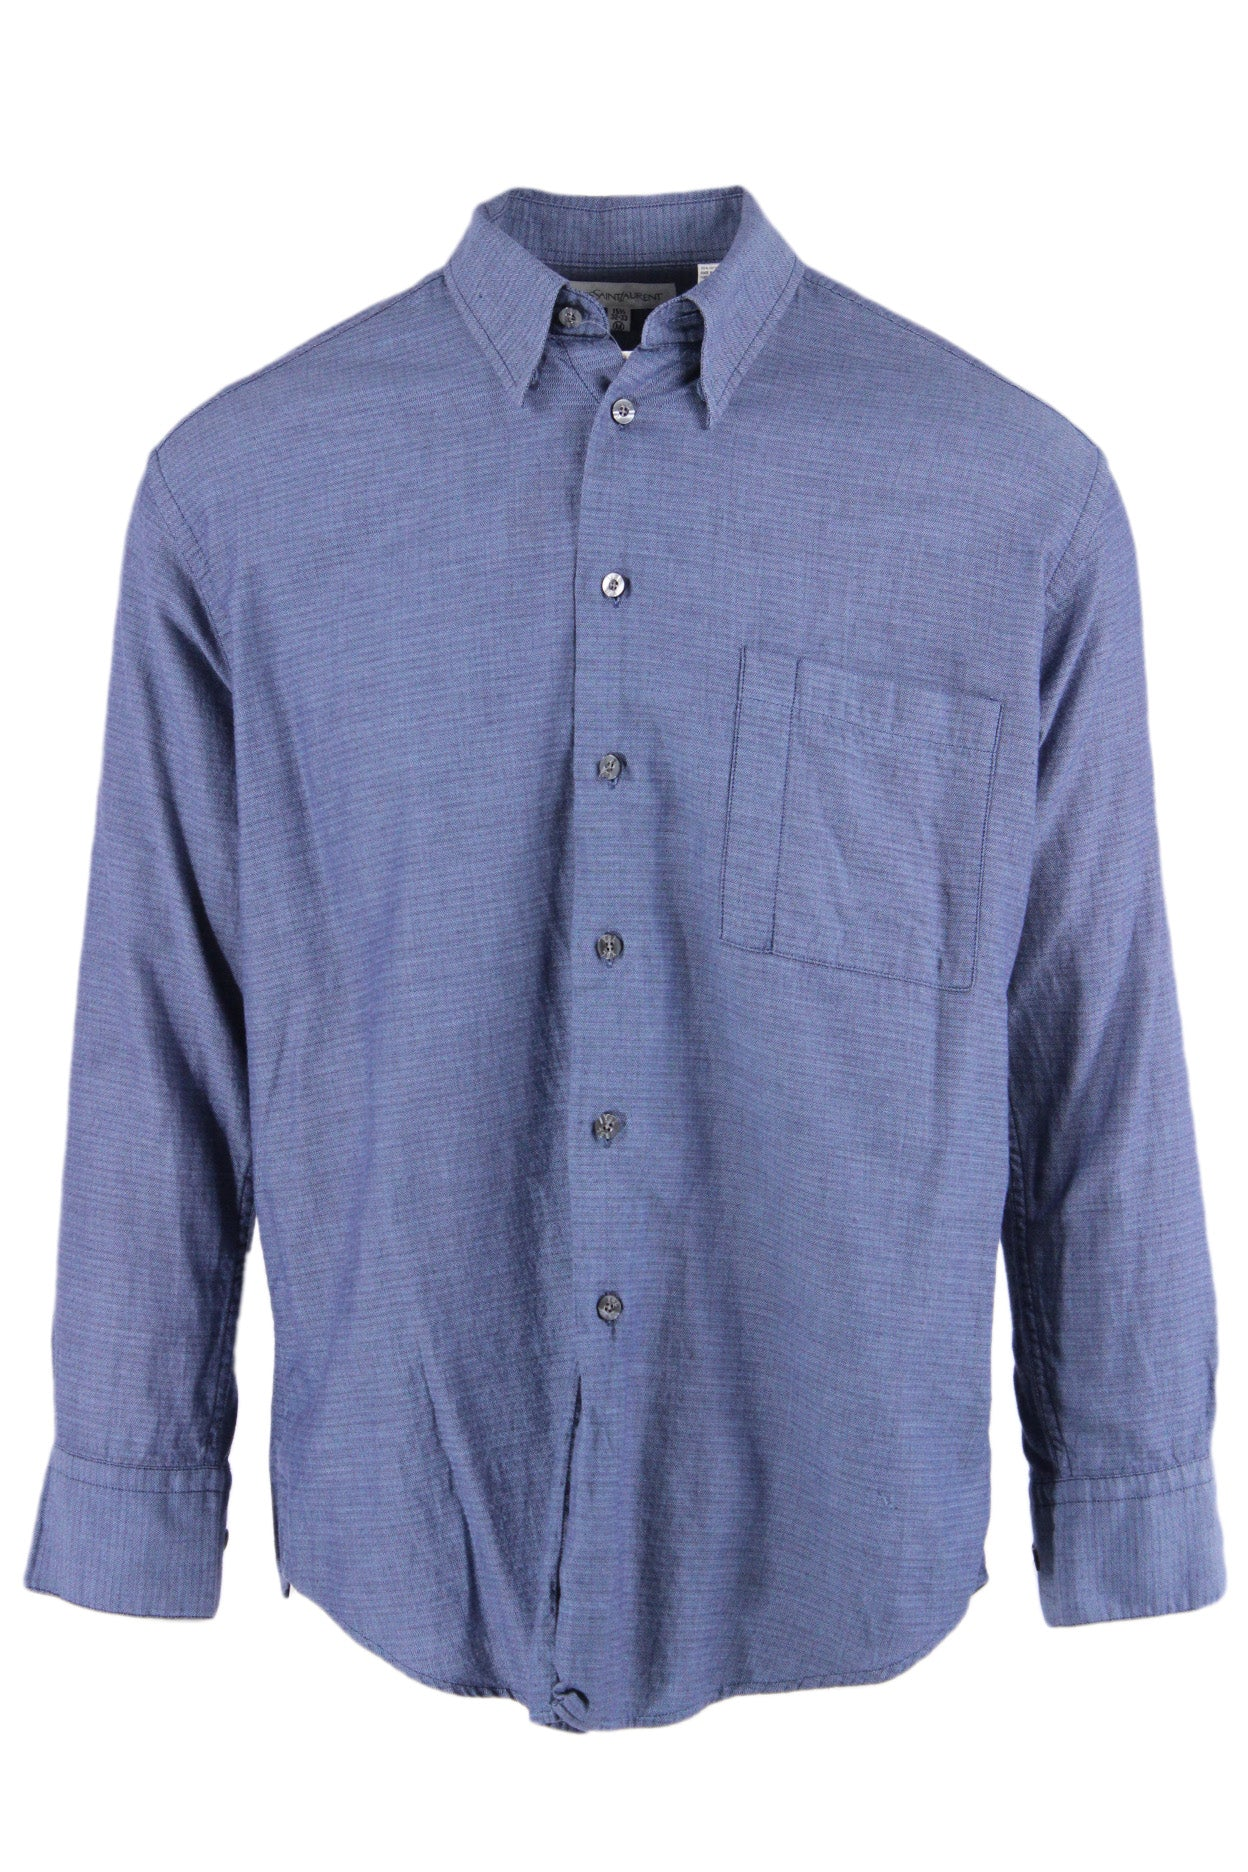 yves saint laurent blue long sleeve print collar shirt. features a button down closure, buttoned sleeve cuffs, & a chest pocket.